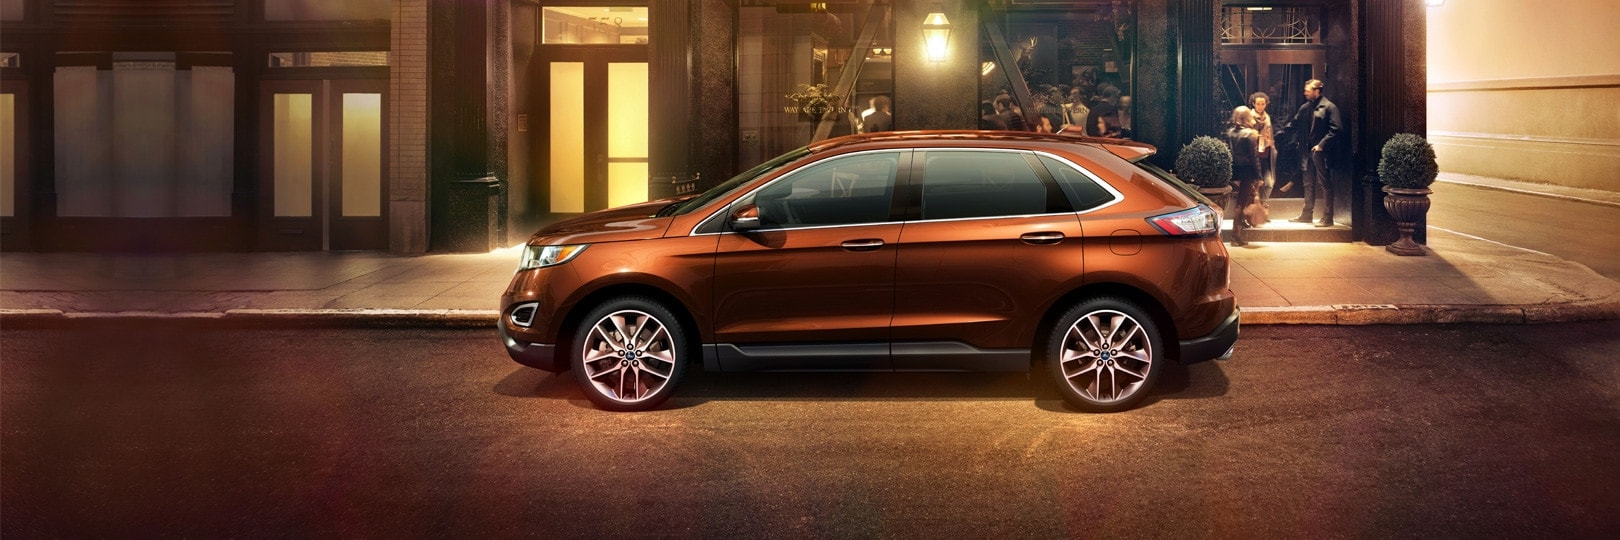 new ford escape vs the competition art hill ford lincoln